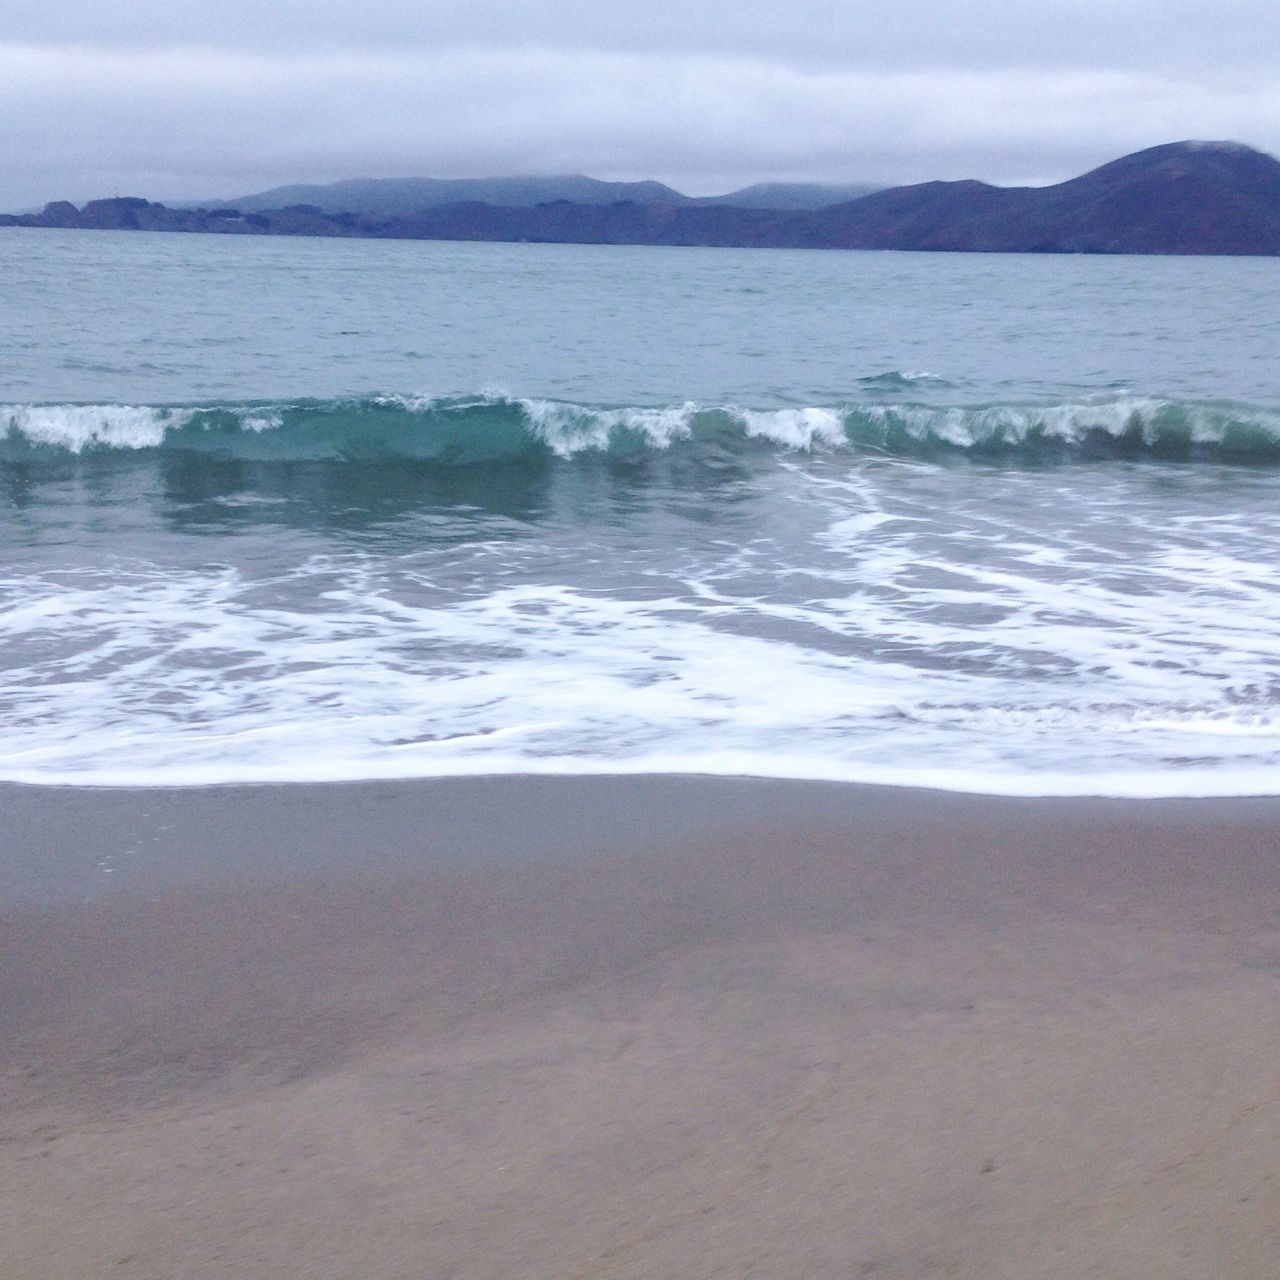 sea, nature, beauty in nature, water, scenics, tranquility, tranquil scene, no people, sky, beach, outdoors, mountain, sand, wave, day, landscape, horizon over water